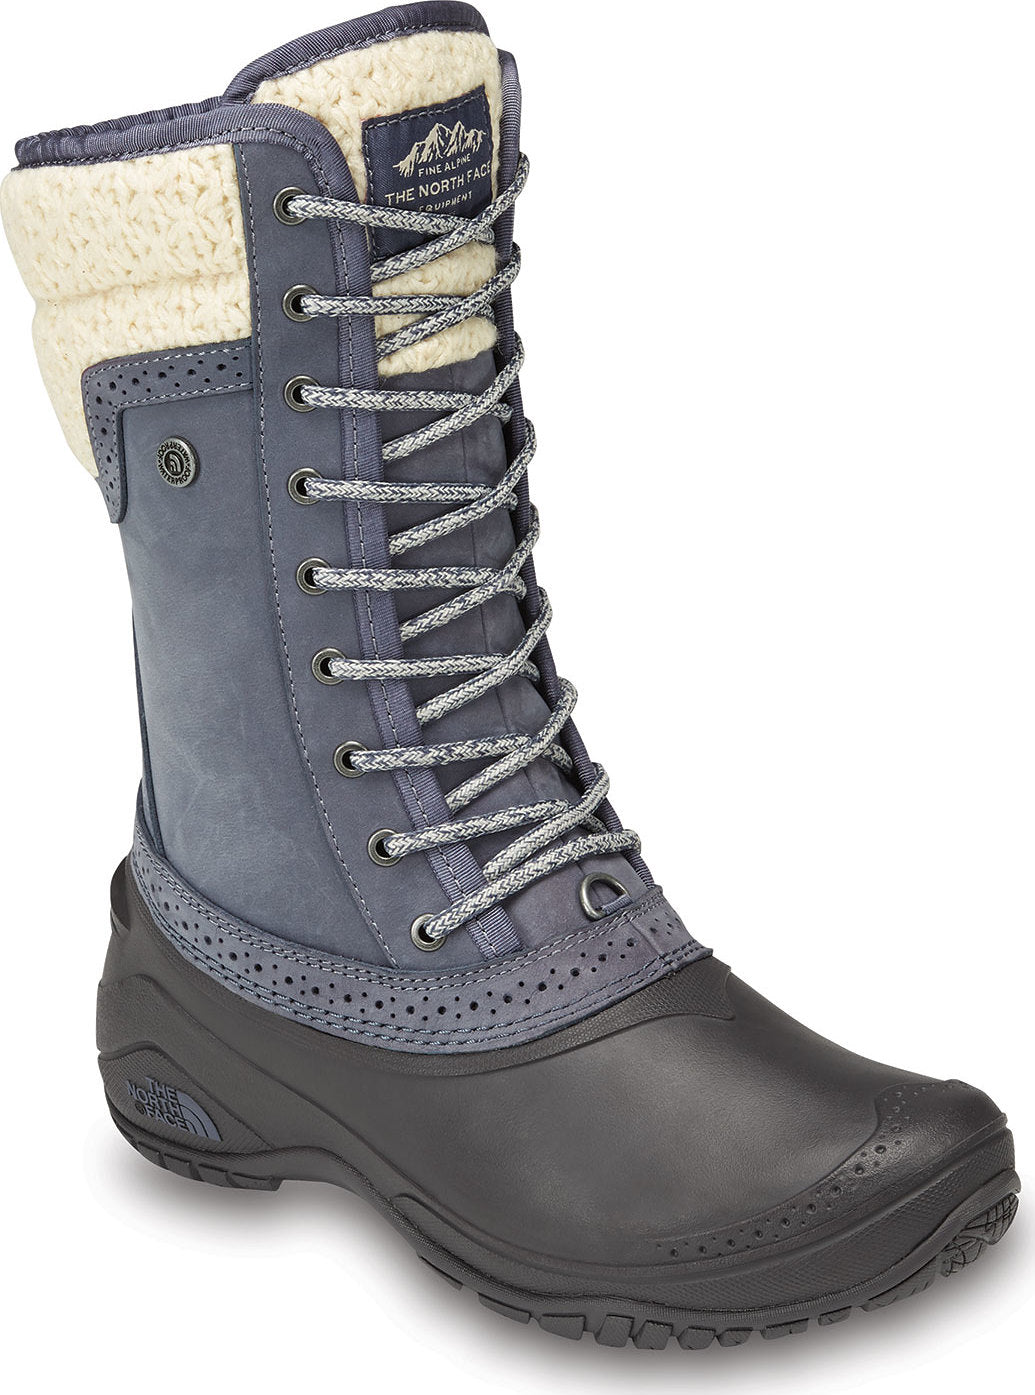 7966b1b7be The North Face Bottes Isolées Shellista Ii Mid Femme | Altitude Sports